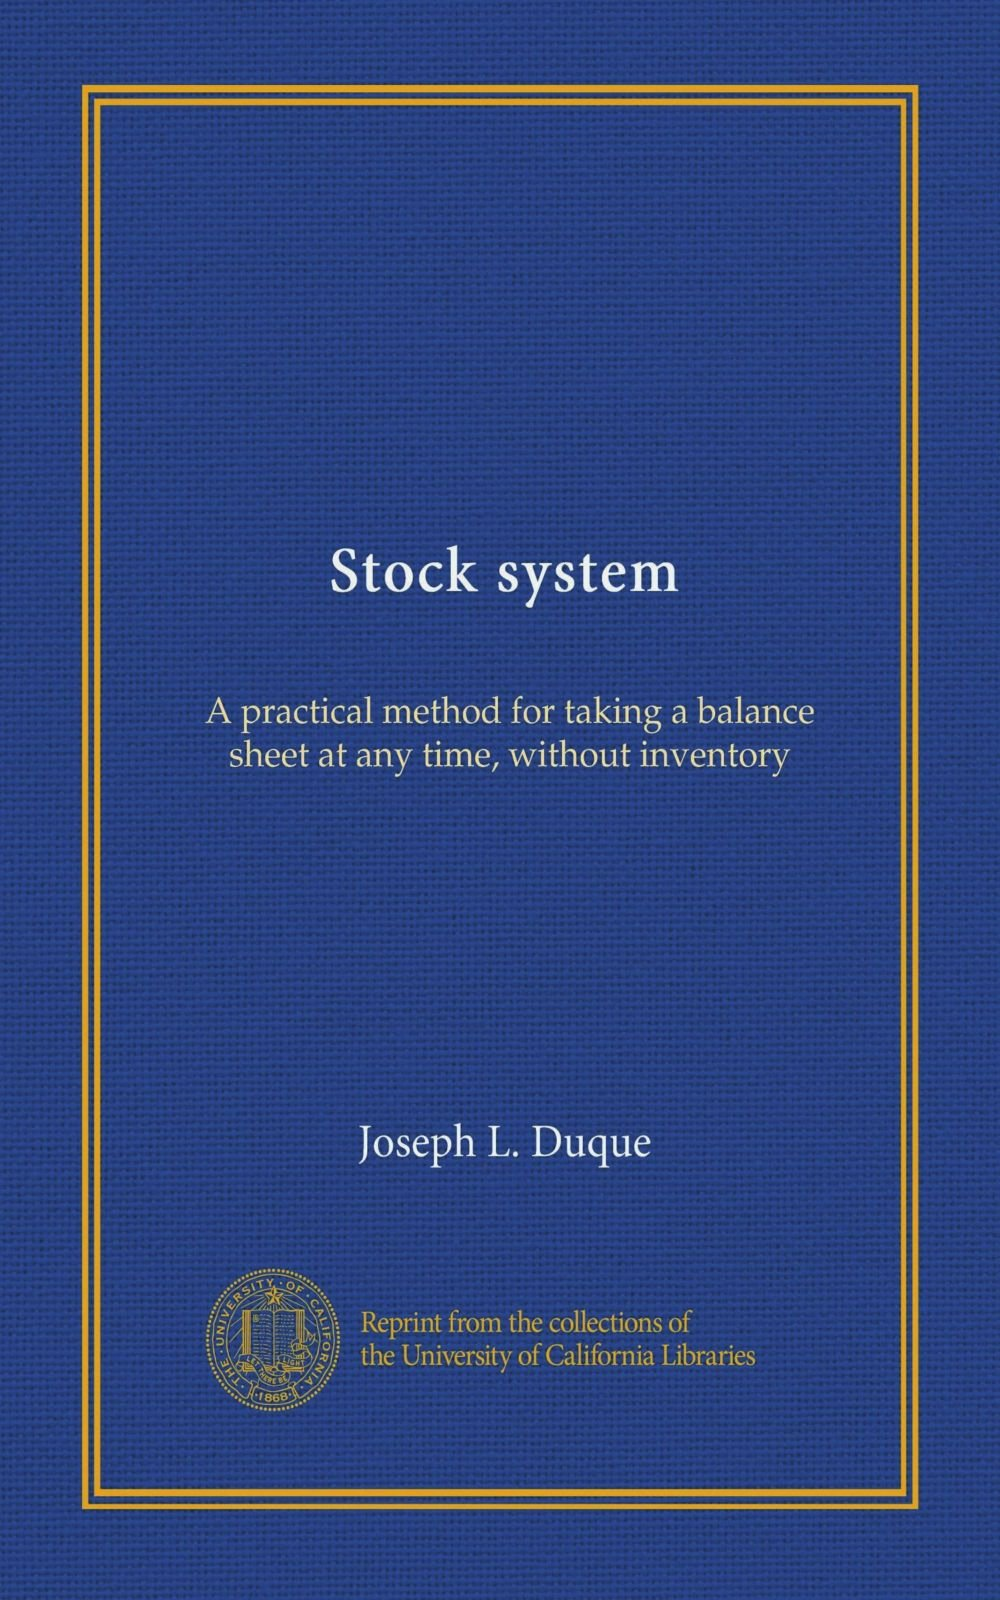 stock system a practical method for taking a balance sheet at any